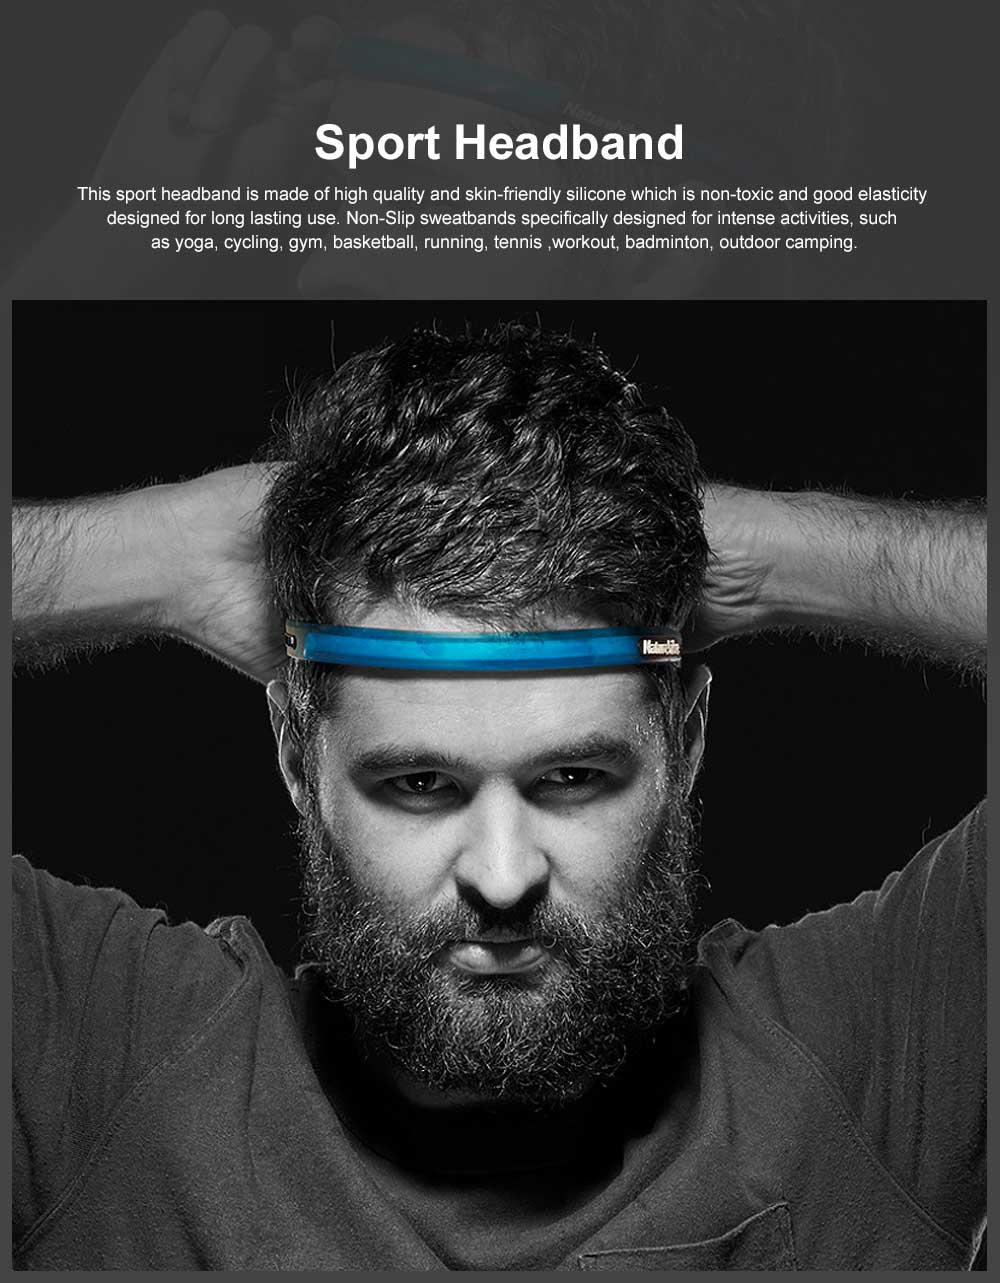 Sweatband Sport Headband, Non Slip Silicone Head Bands for Yoga Running Cycling Tennis, Outdoor Working Out Gym Headwear Accessories 0